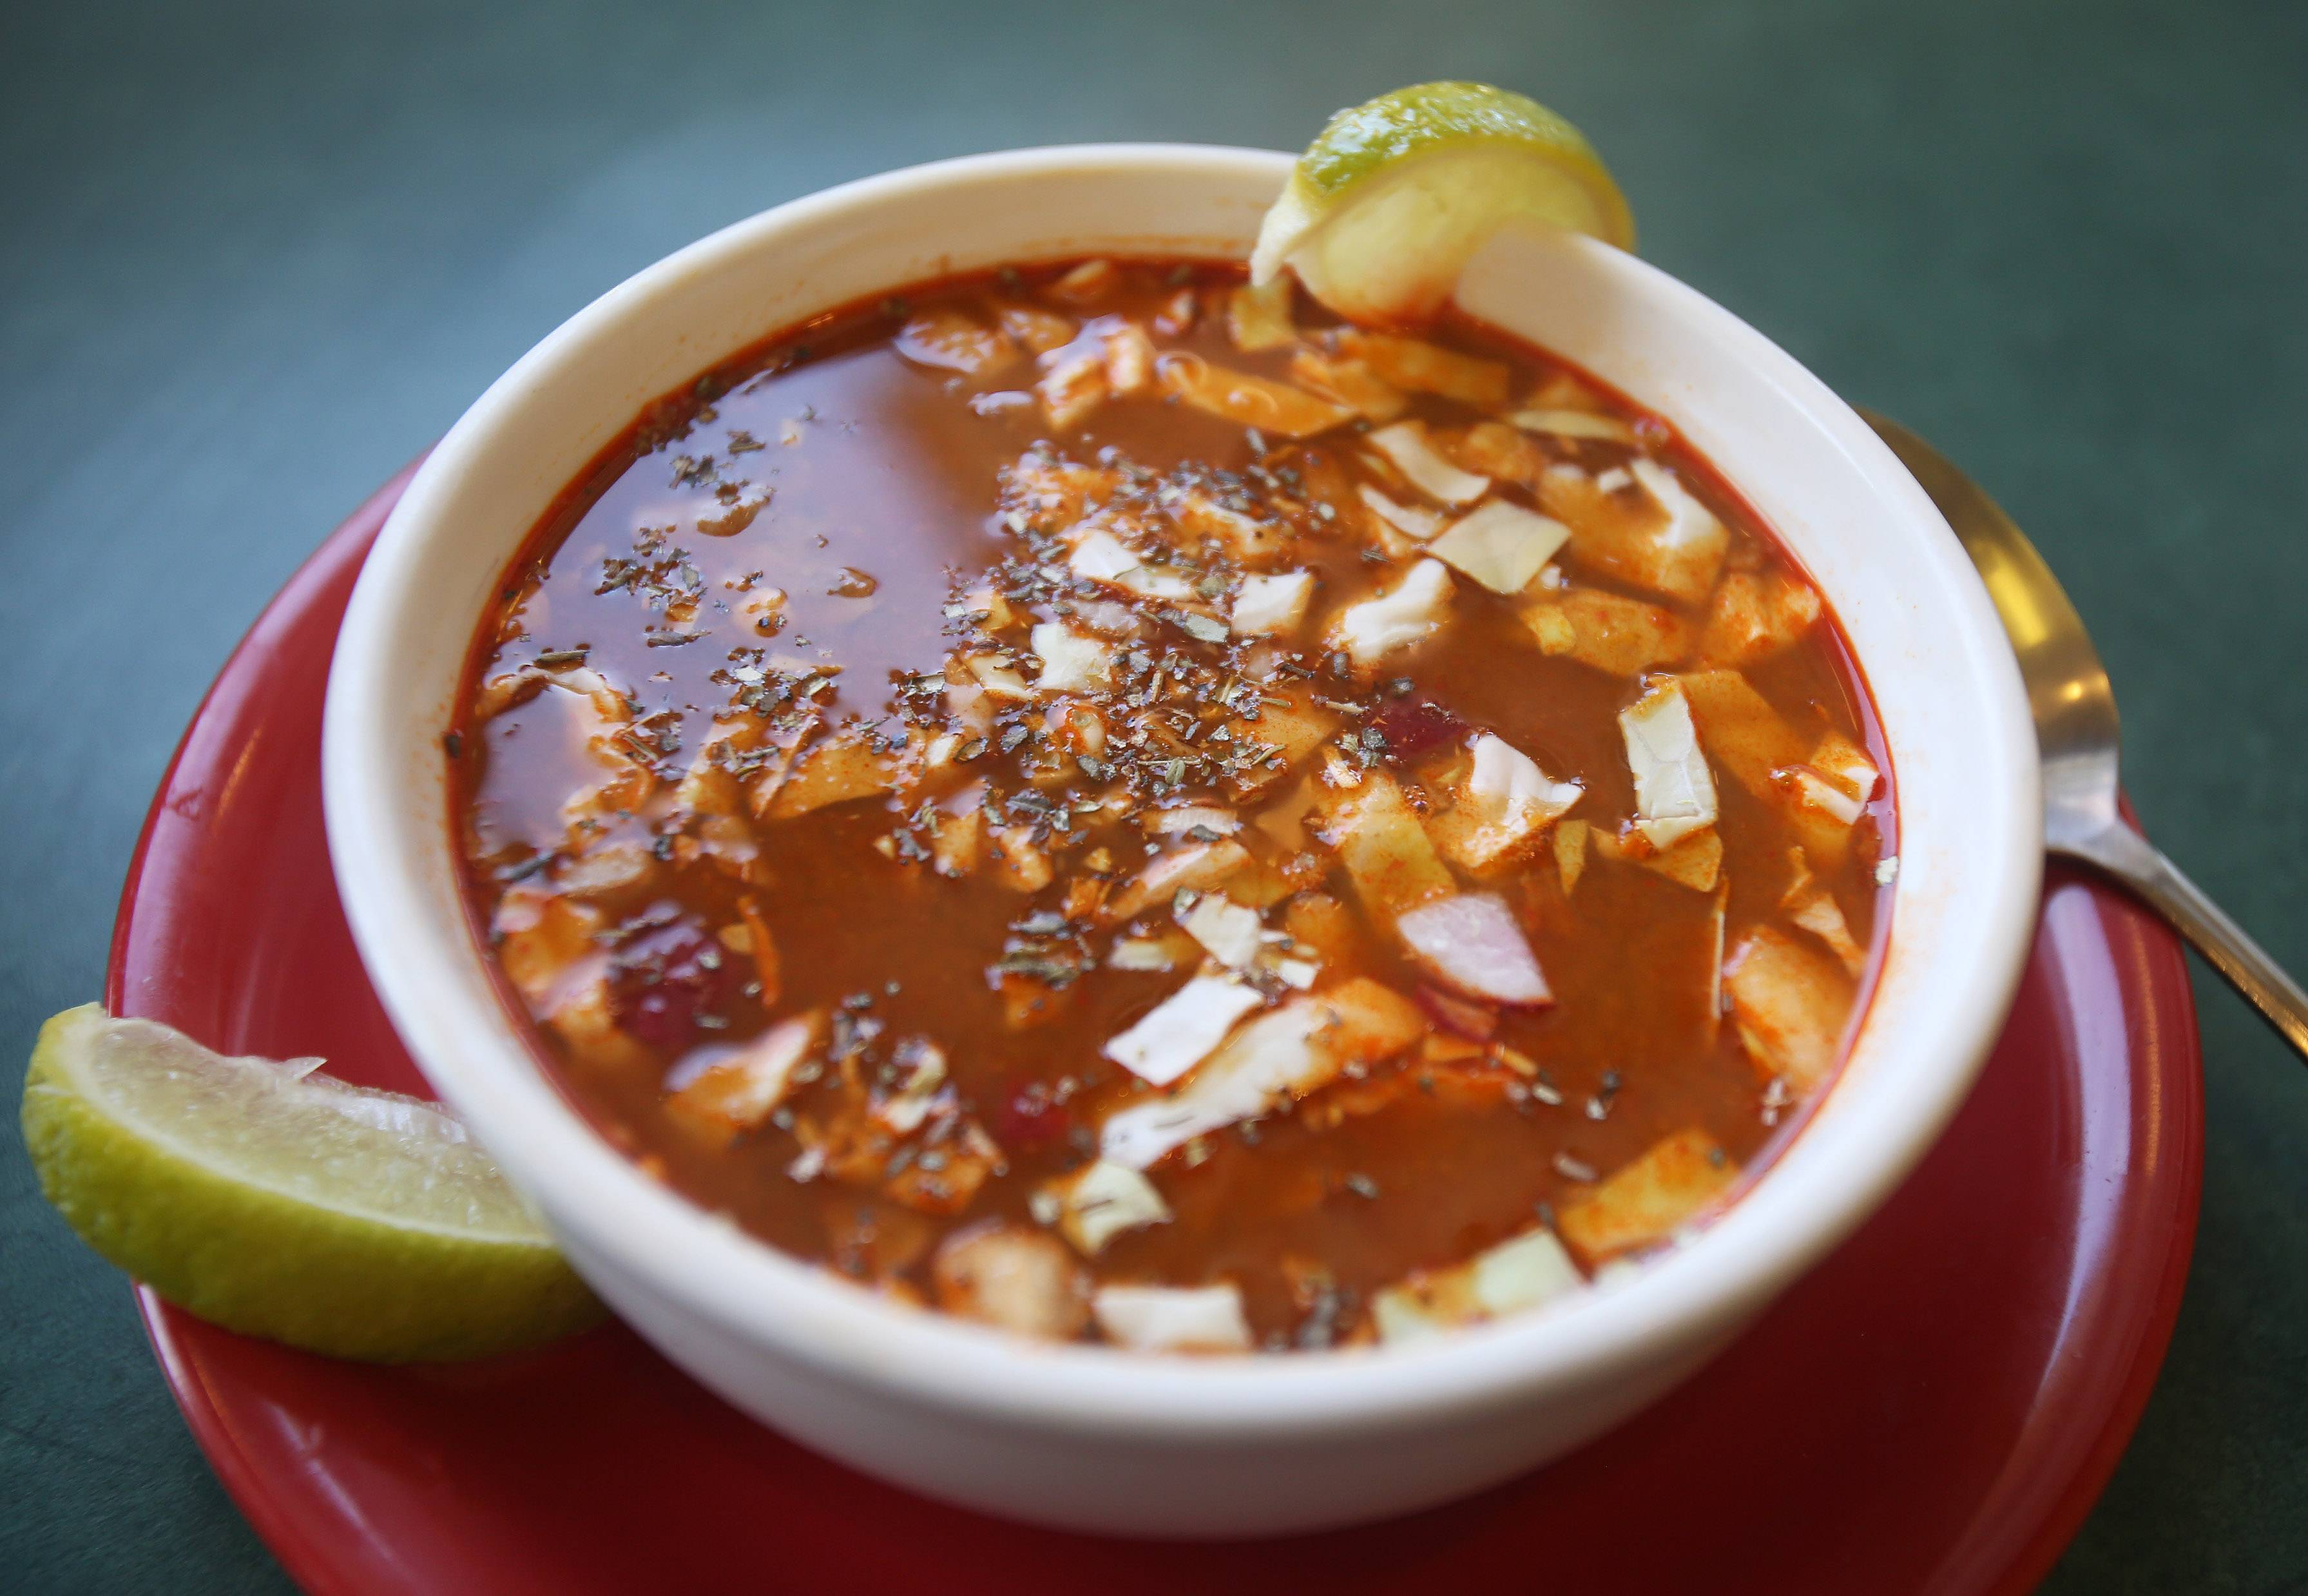 Momcorn's pozole soup has quite a kick. Consider yourself warned.